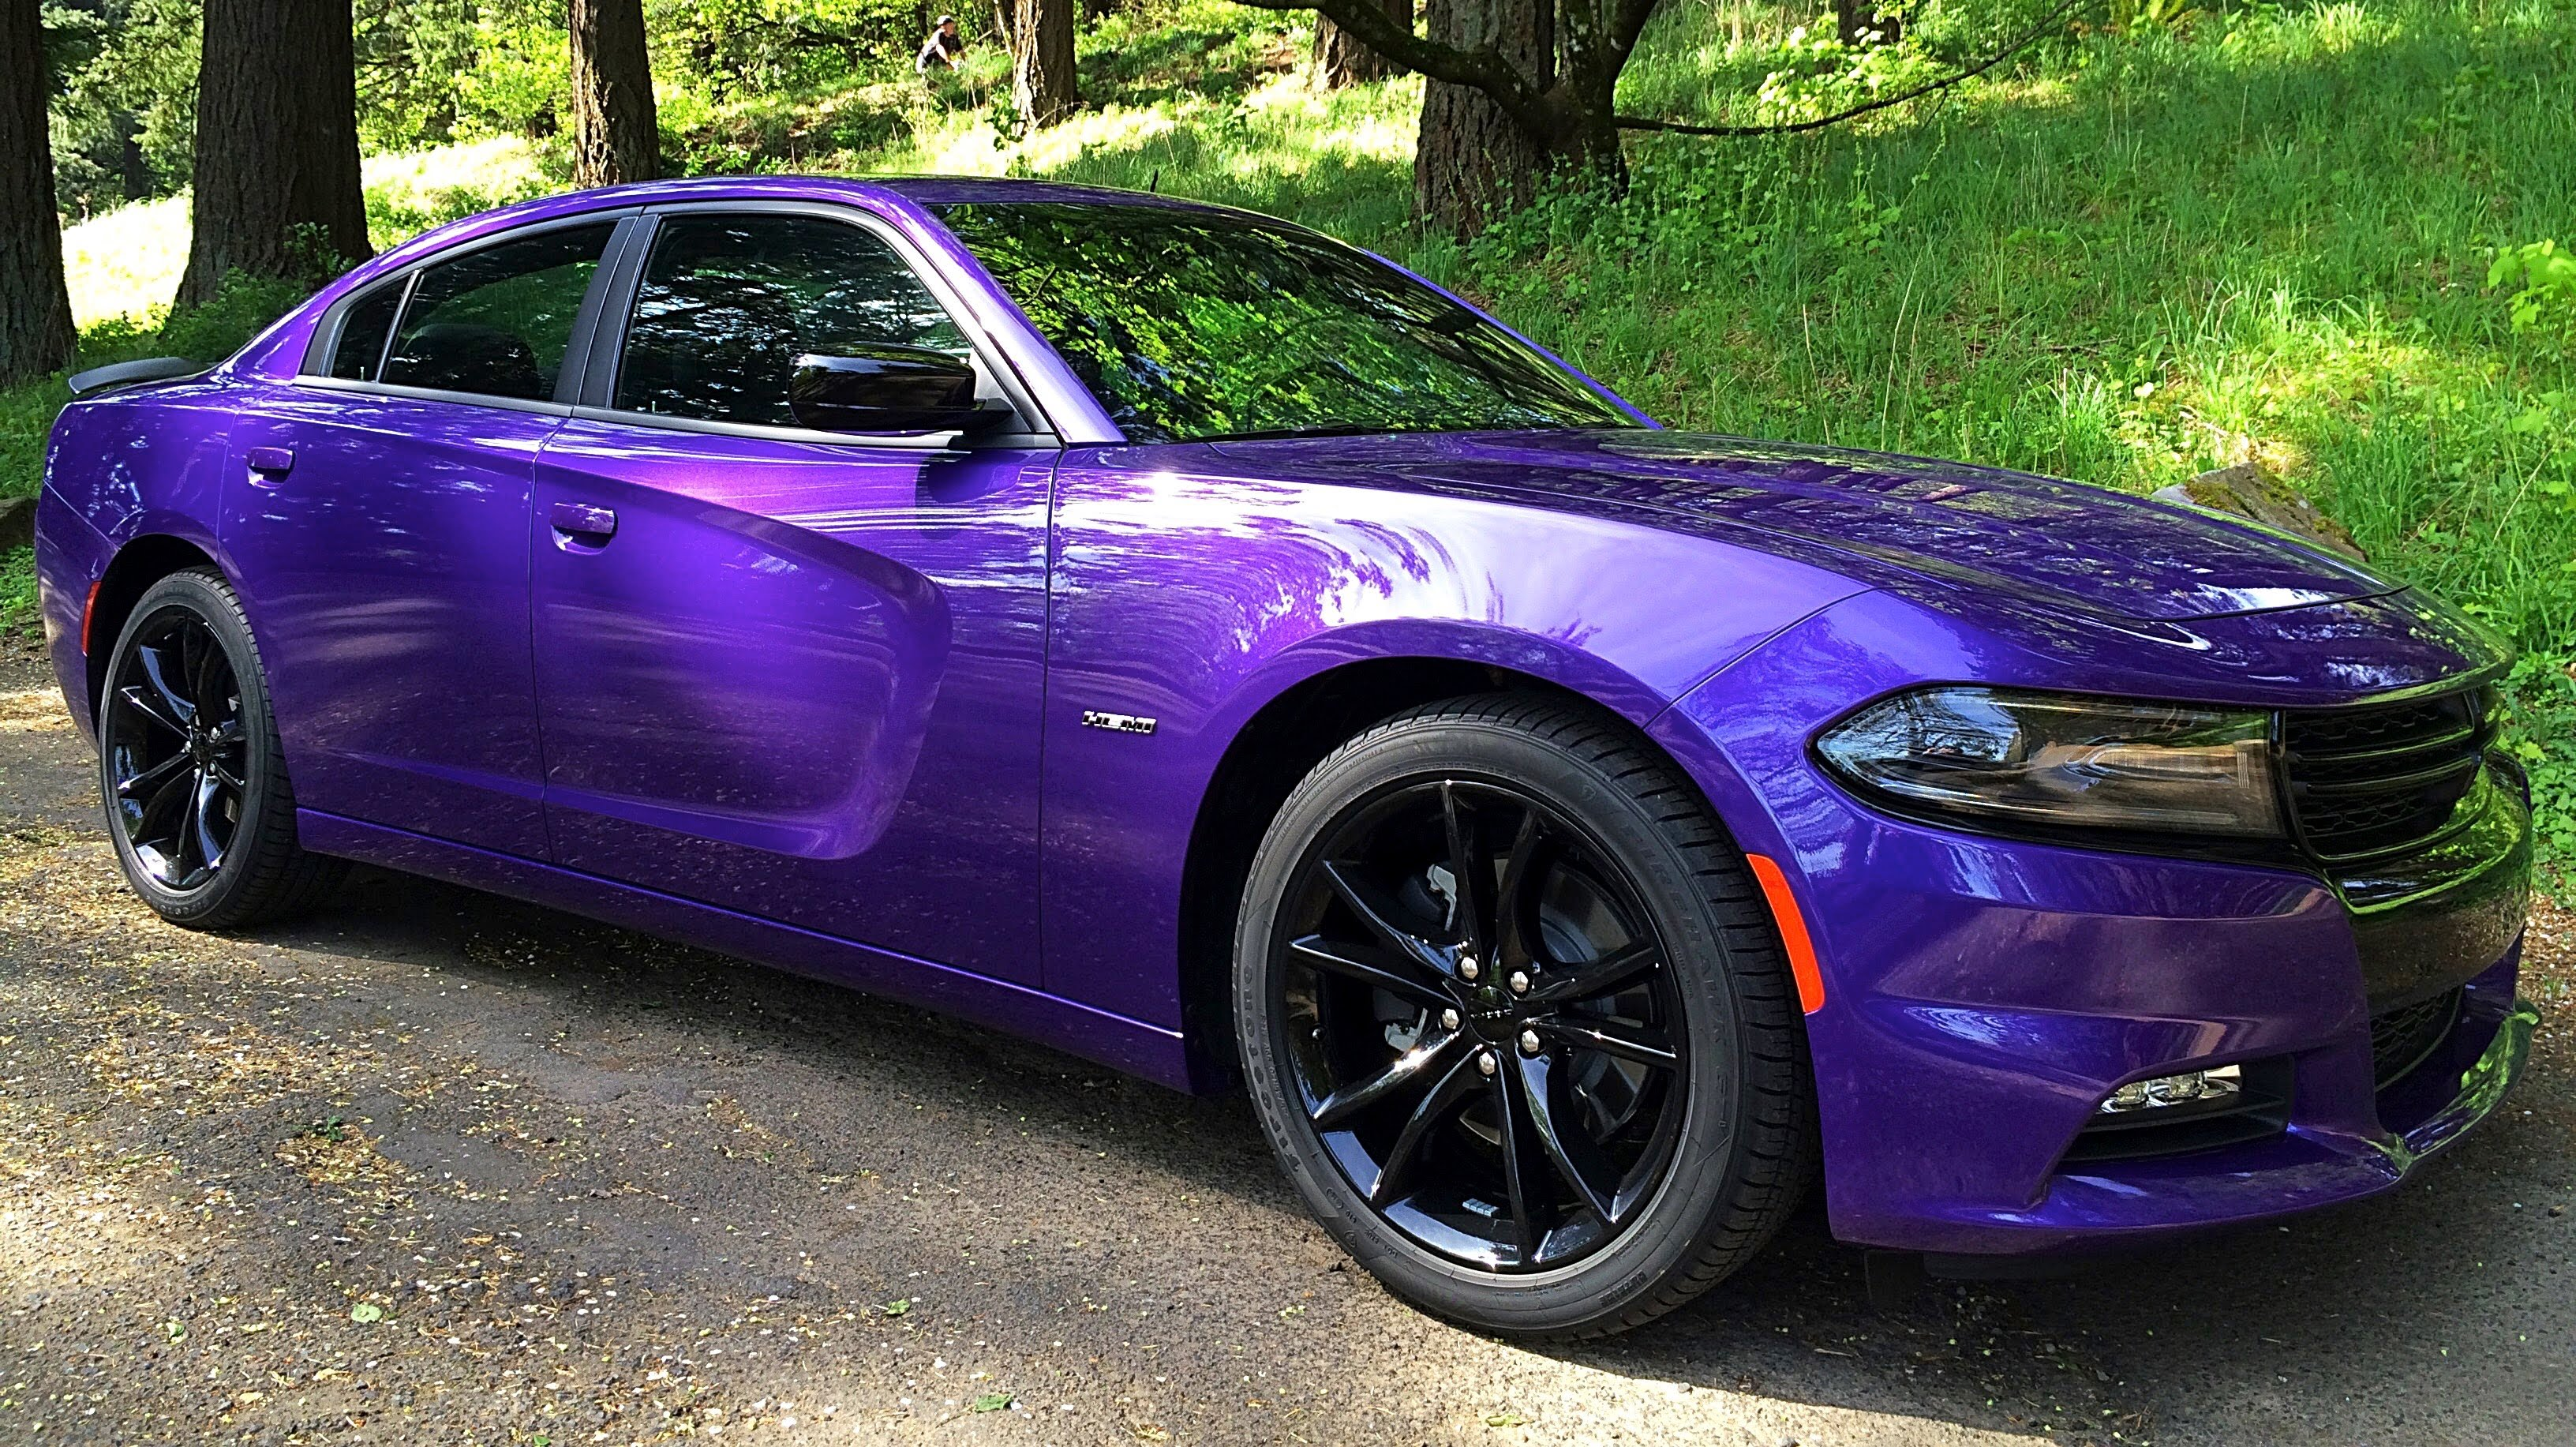 2016 Dodge Charger Blacktop Brings American Muscle In A More Refined Package